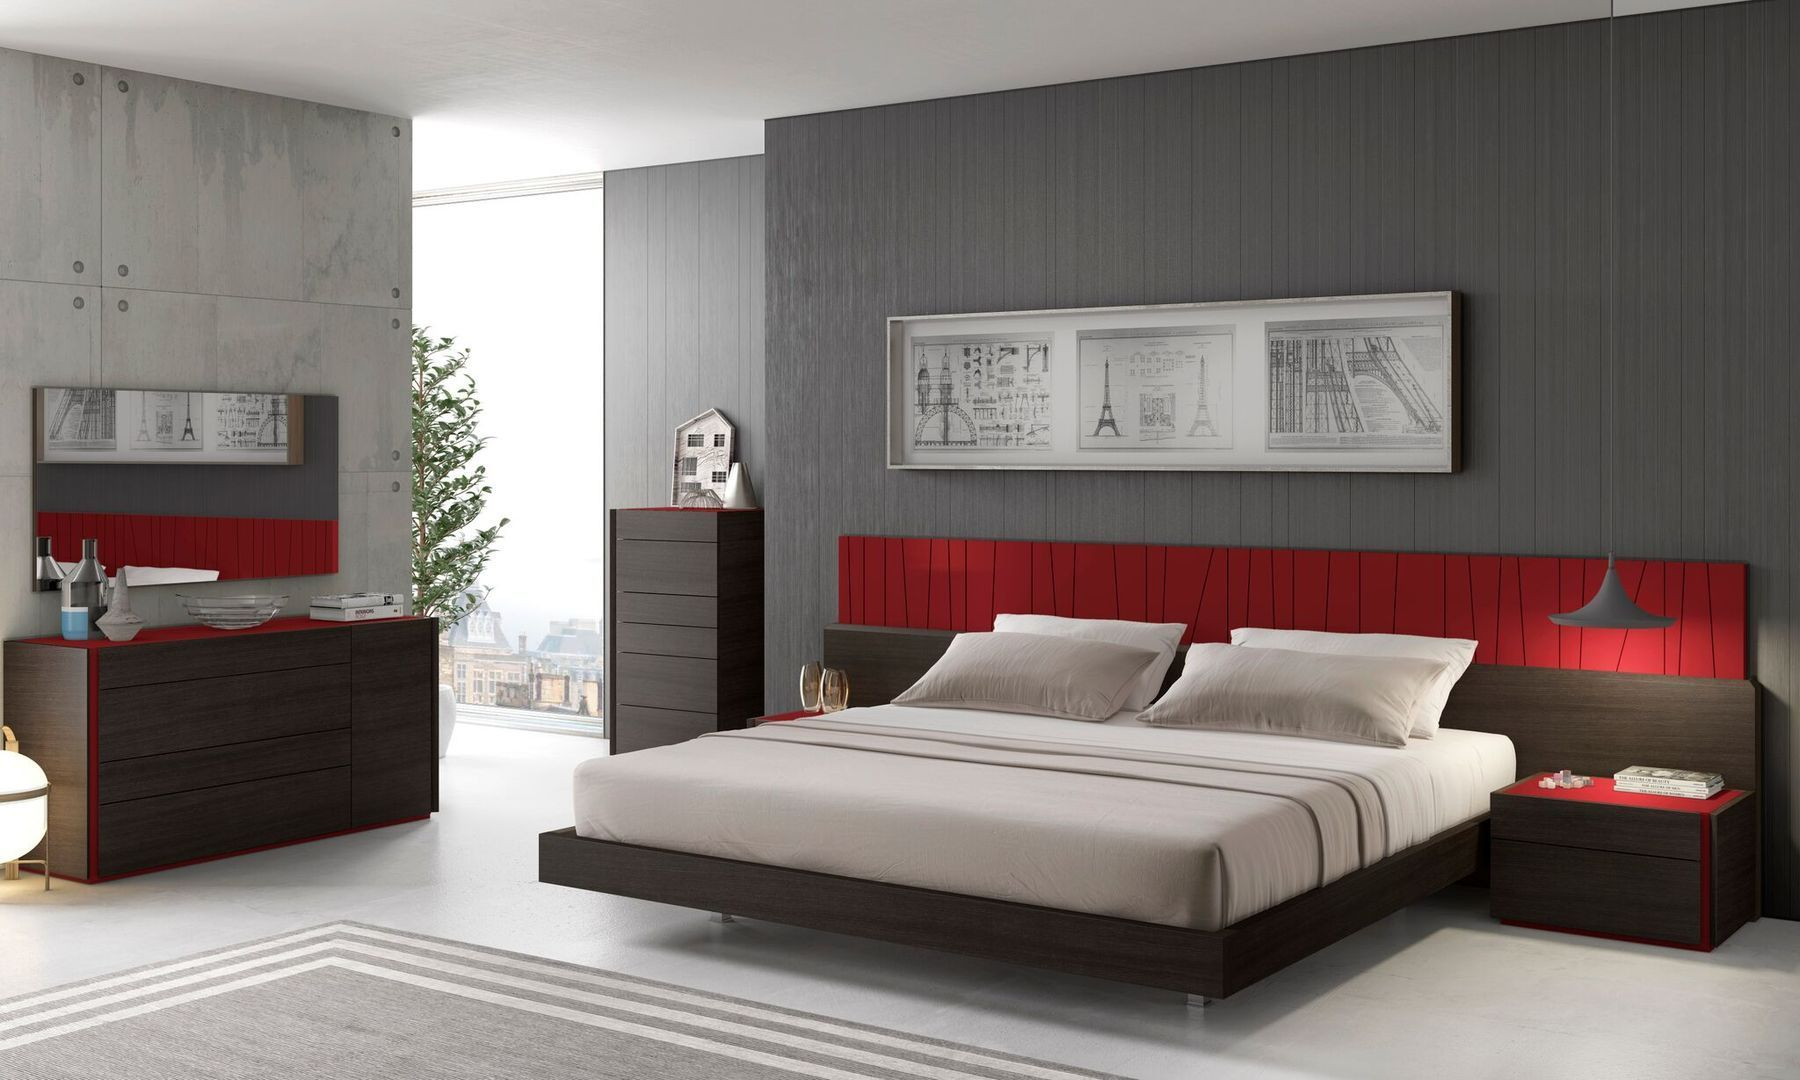 Lagos Queen Size Bed 17867250 J M Modern Bedrooms Beds At